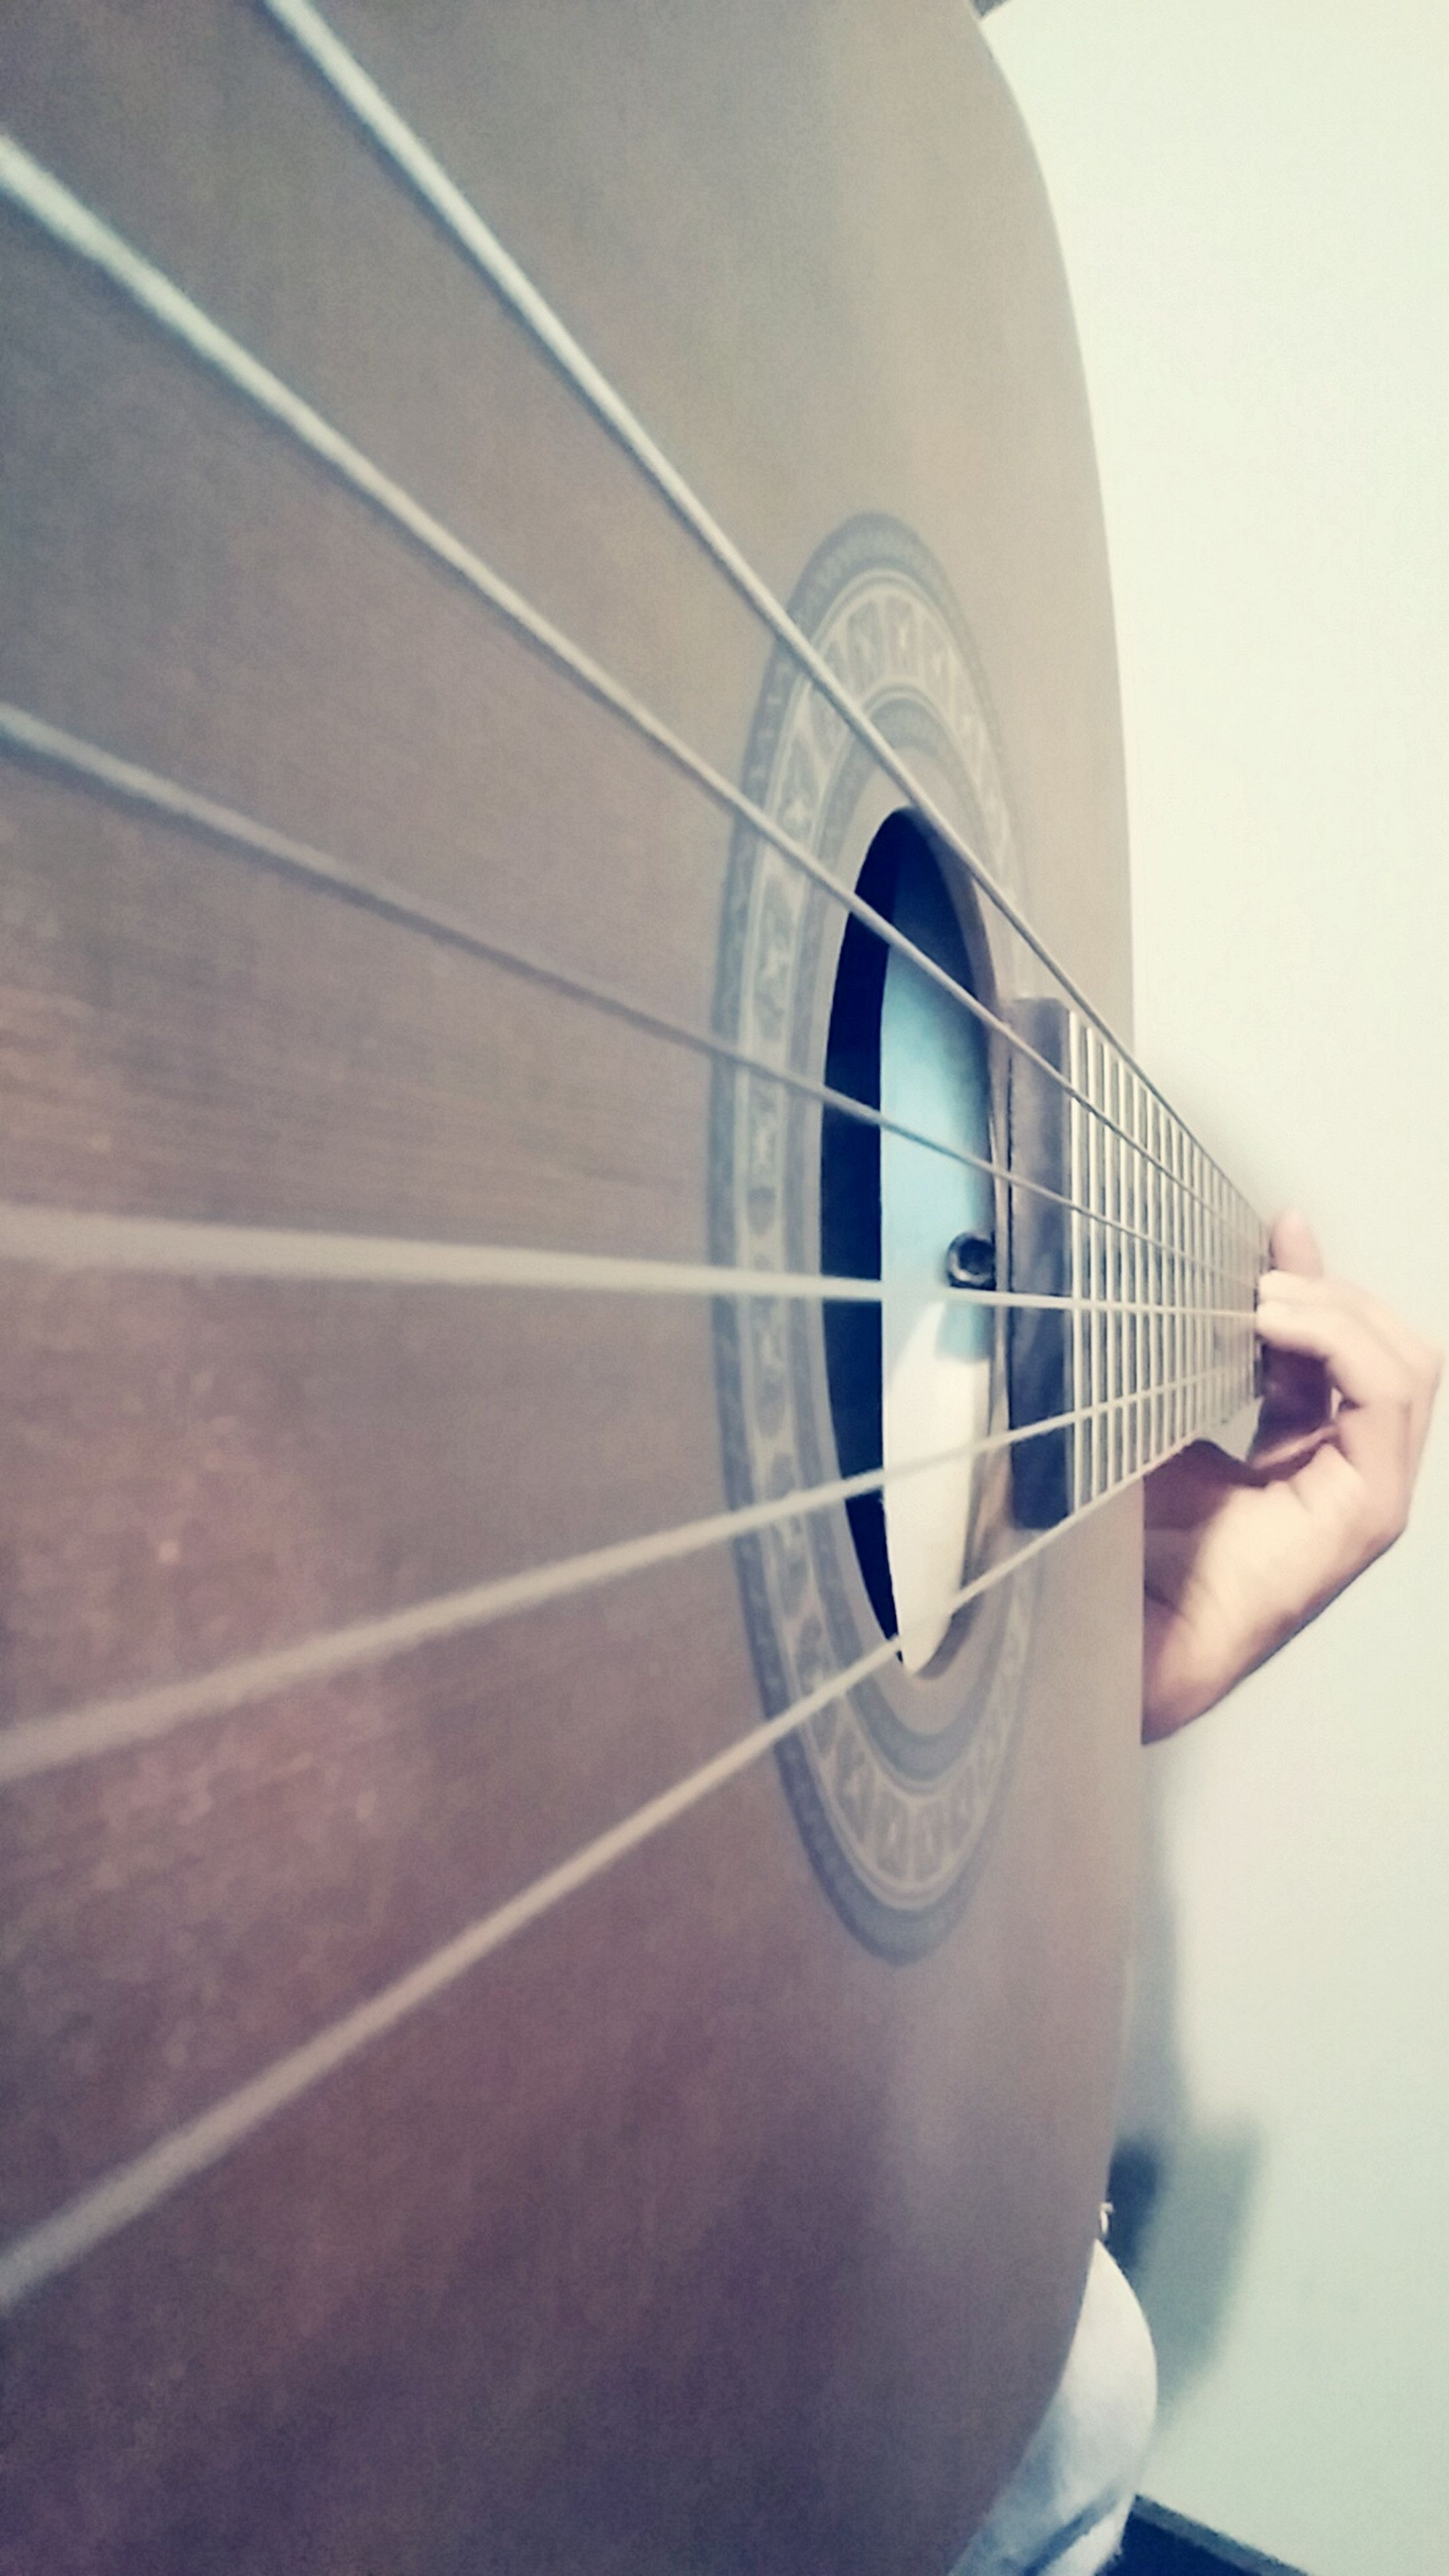 indoors, part of, technology, cropped, music, arts culture and entertainment, guitar, person, musical instrument, close-up, metal, holding, lifestyles, day, men, modern, copy space, leisure activity